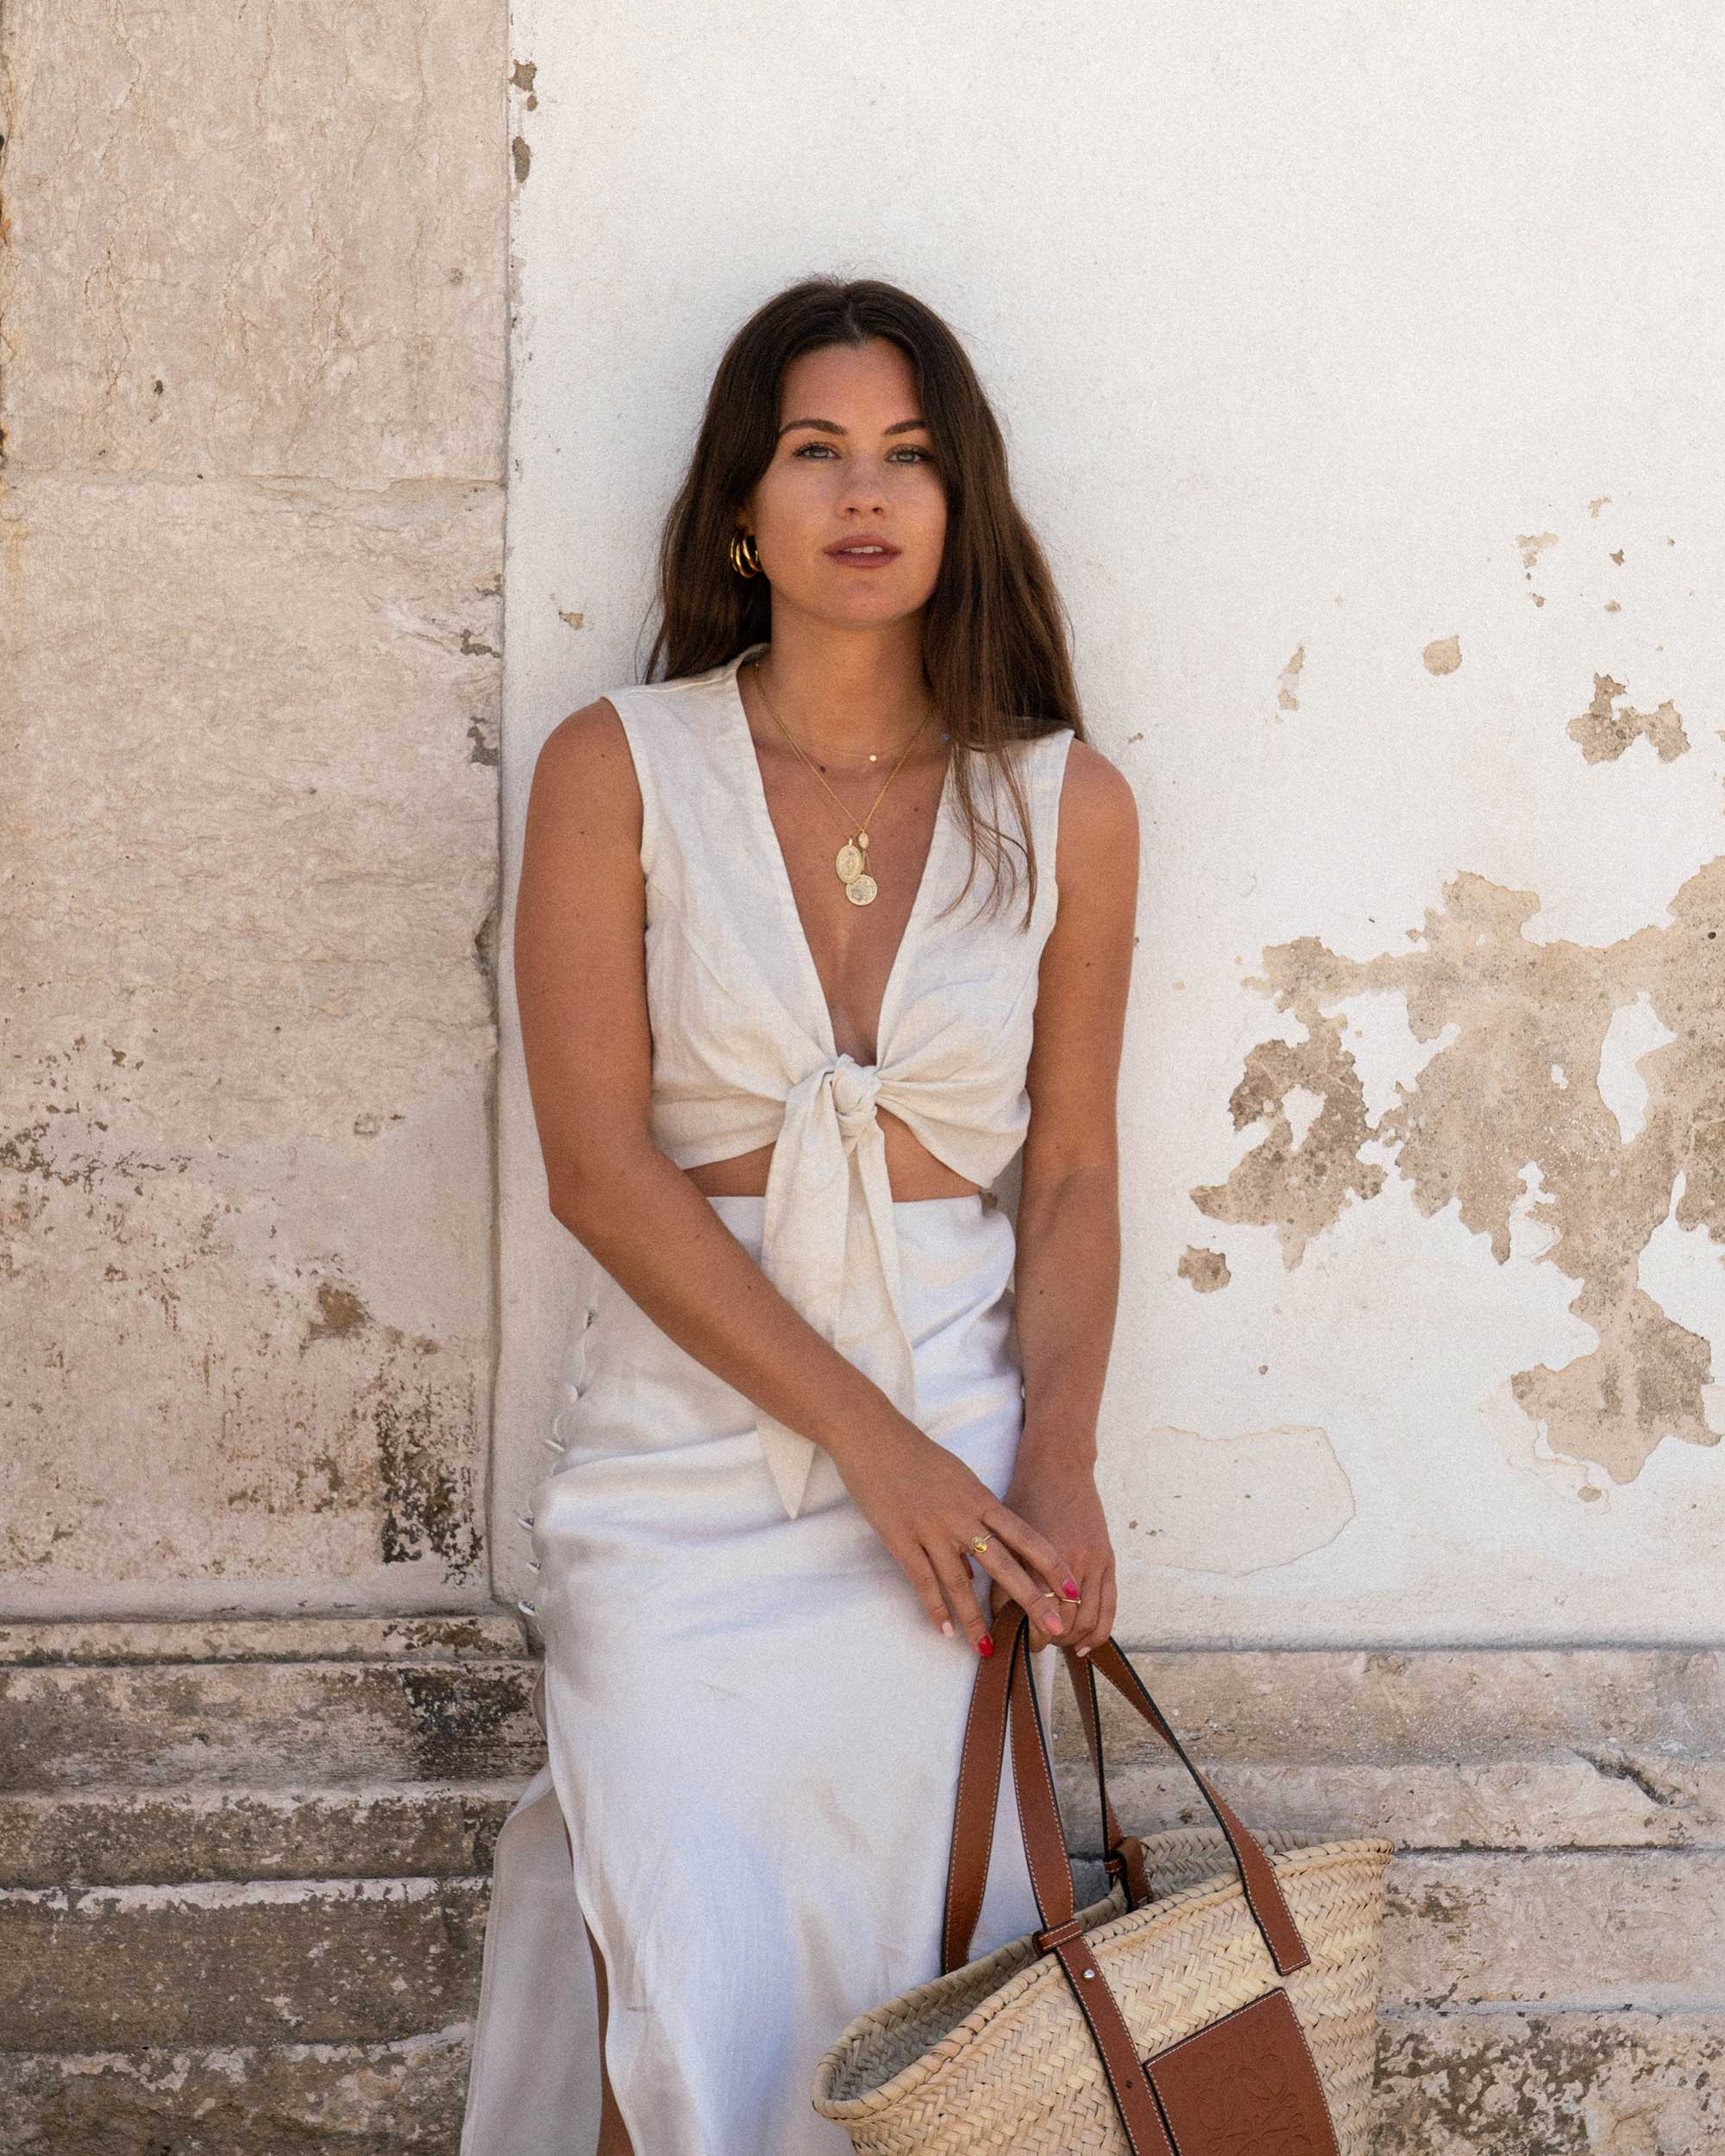 Sarah Butler of Sarah Styles Seattle wears Faithfull the Brand Marcie Plunging Cropped Tie Top and Loewe Raffia Basket Tote Bag in Lisbon, Portugal | @sarahchristine - 1.jpg